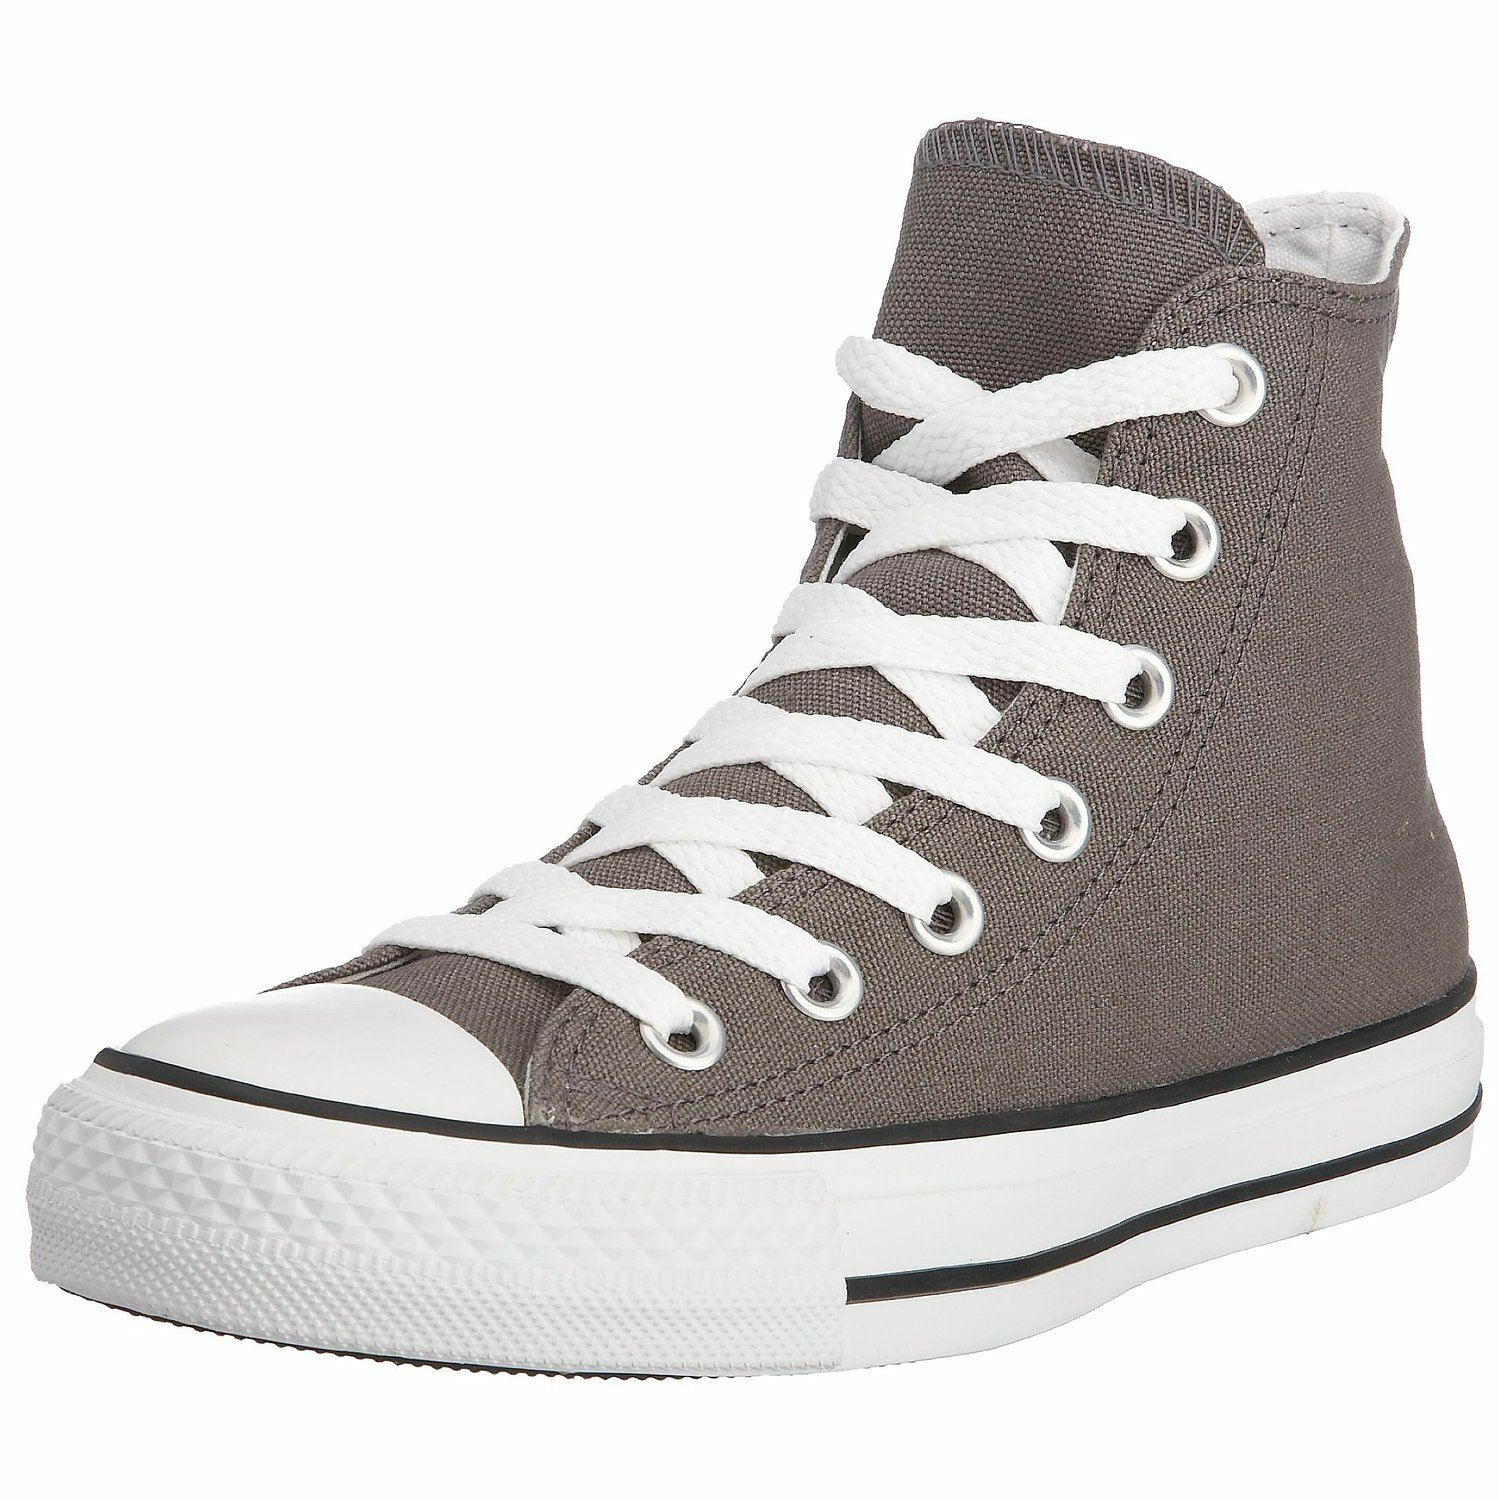 Converse Chuck Taylor All Star Charcoal Weiß Hi Unisex Turnschuhe Stiefel